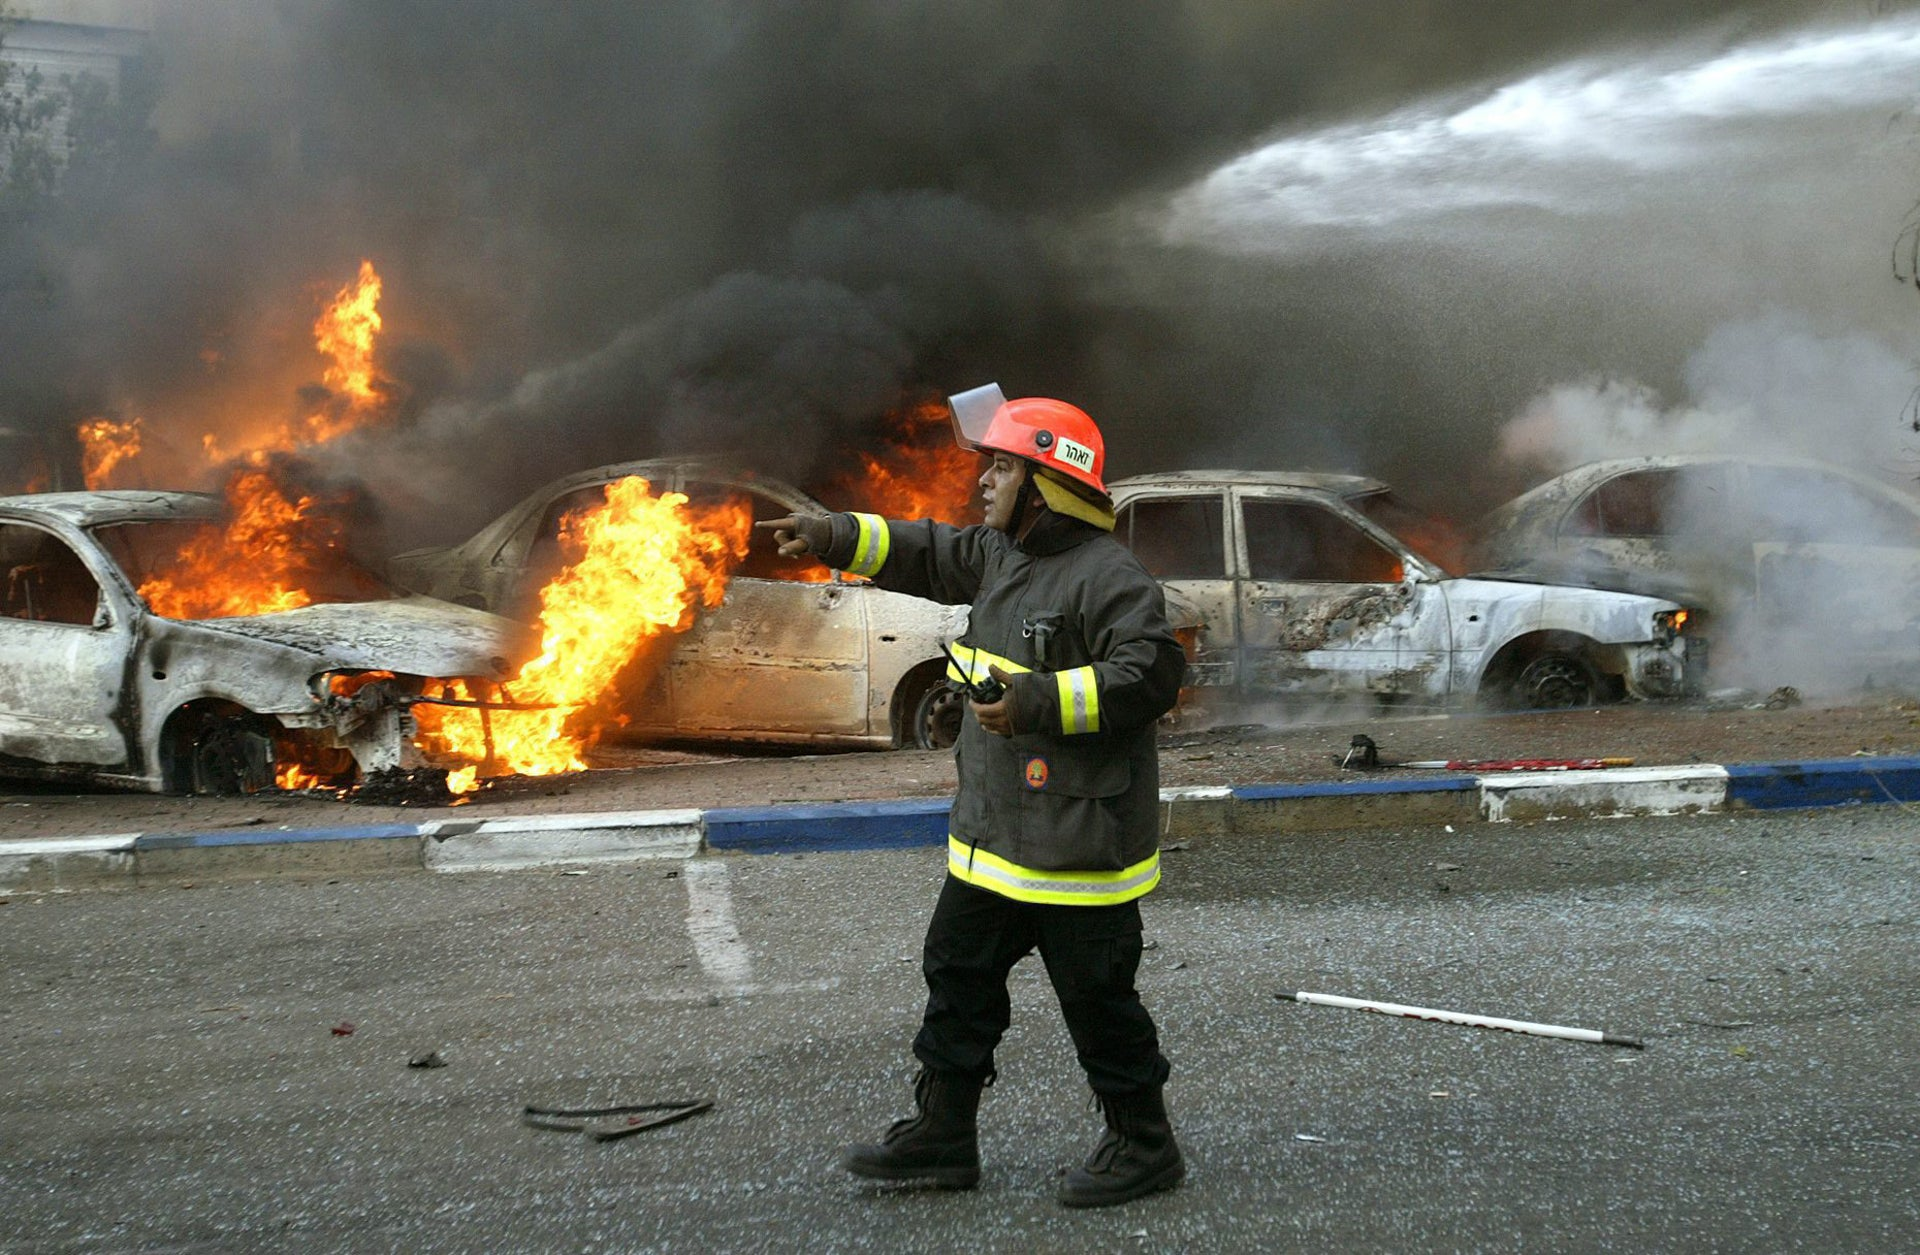 Israeli firefighters arrive to extinguish a fire at the scene of a Hezbollah rocket attack in the northern Israel city of Haifa, Aug. 13, 2006.